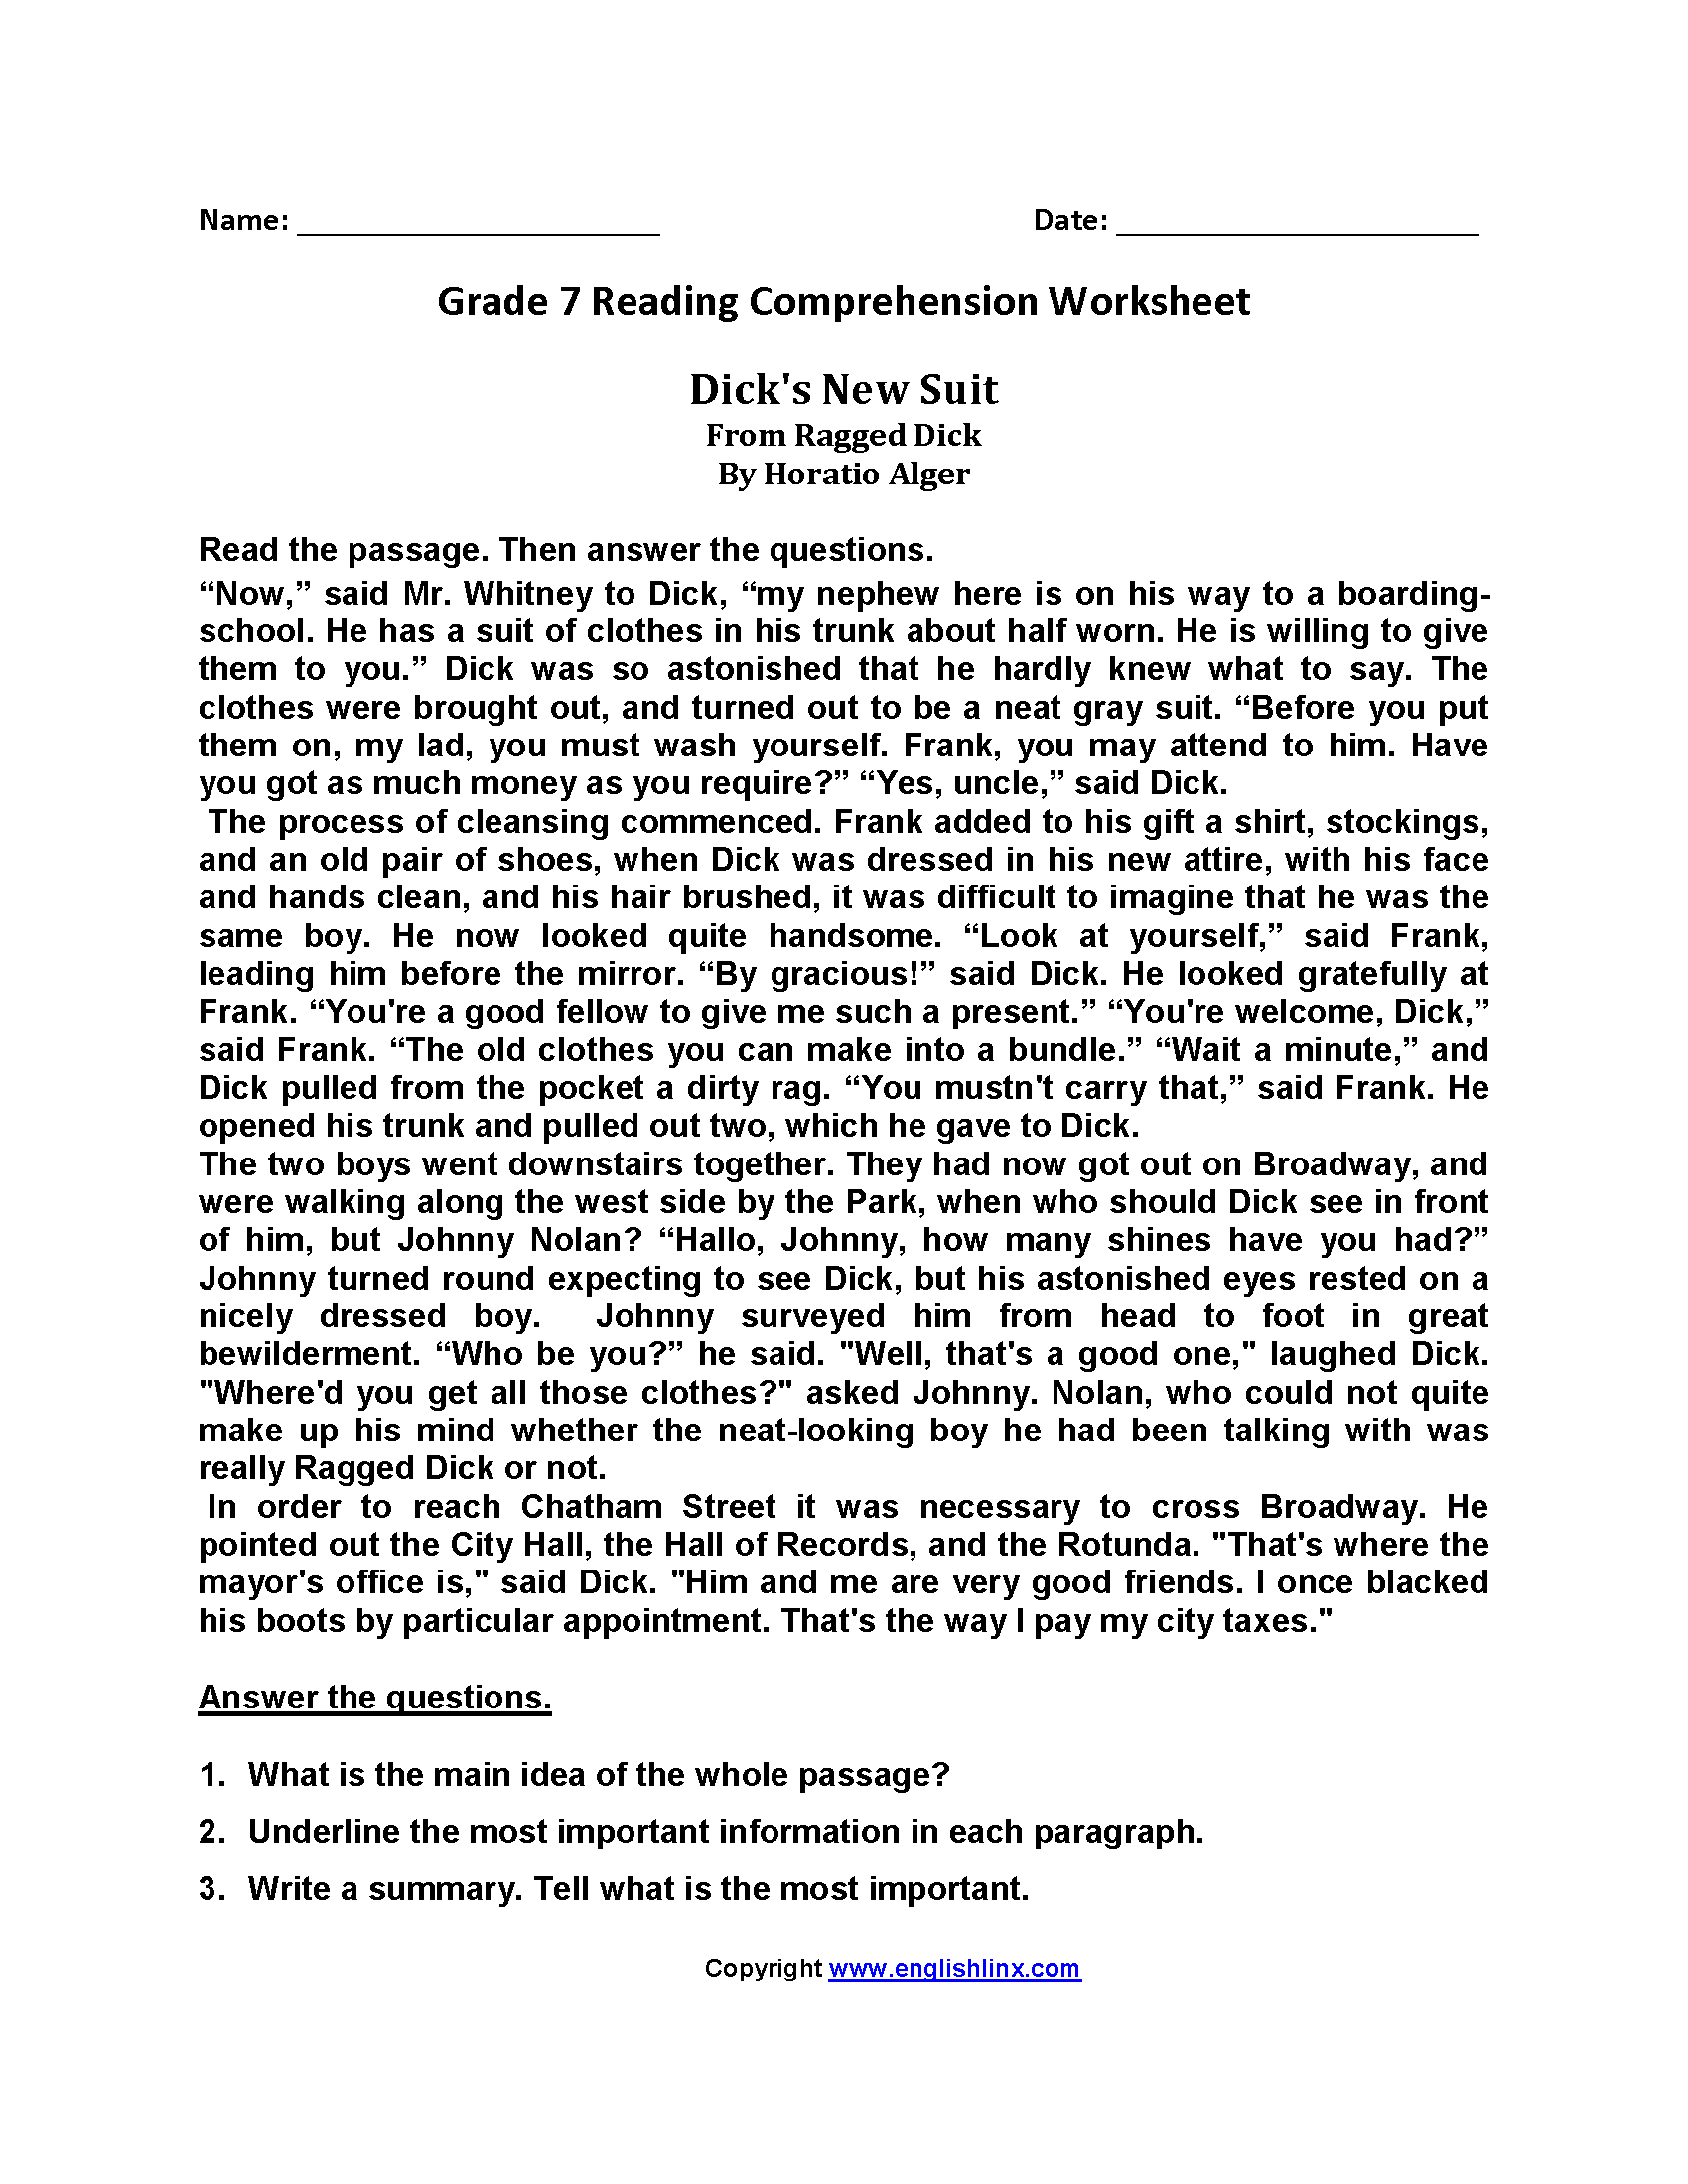 - Reading Comprehension For Grade 7 With Questions And Answers